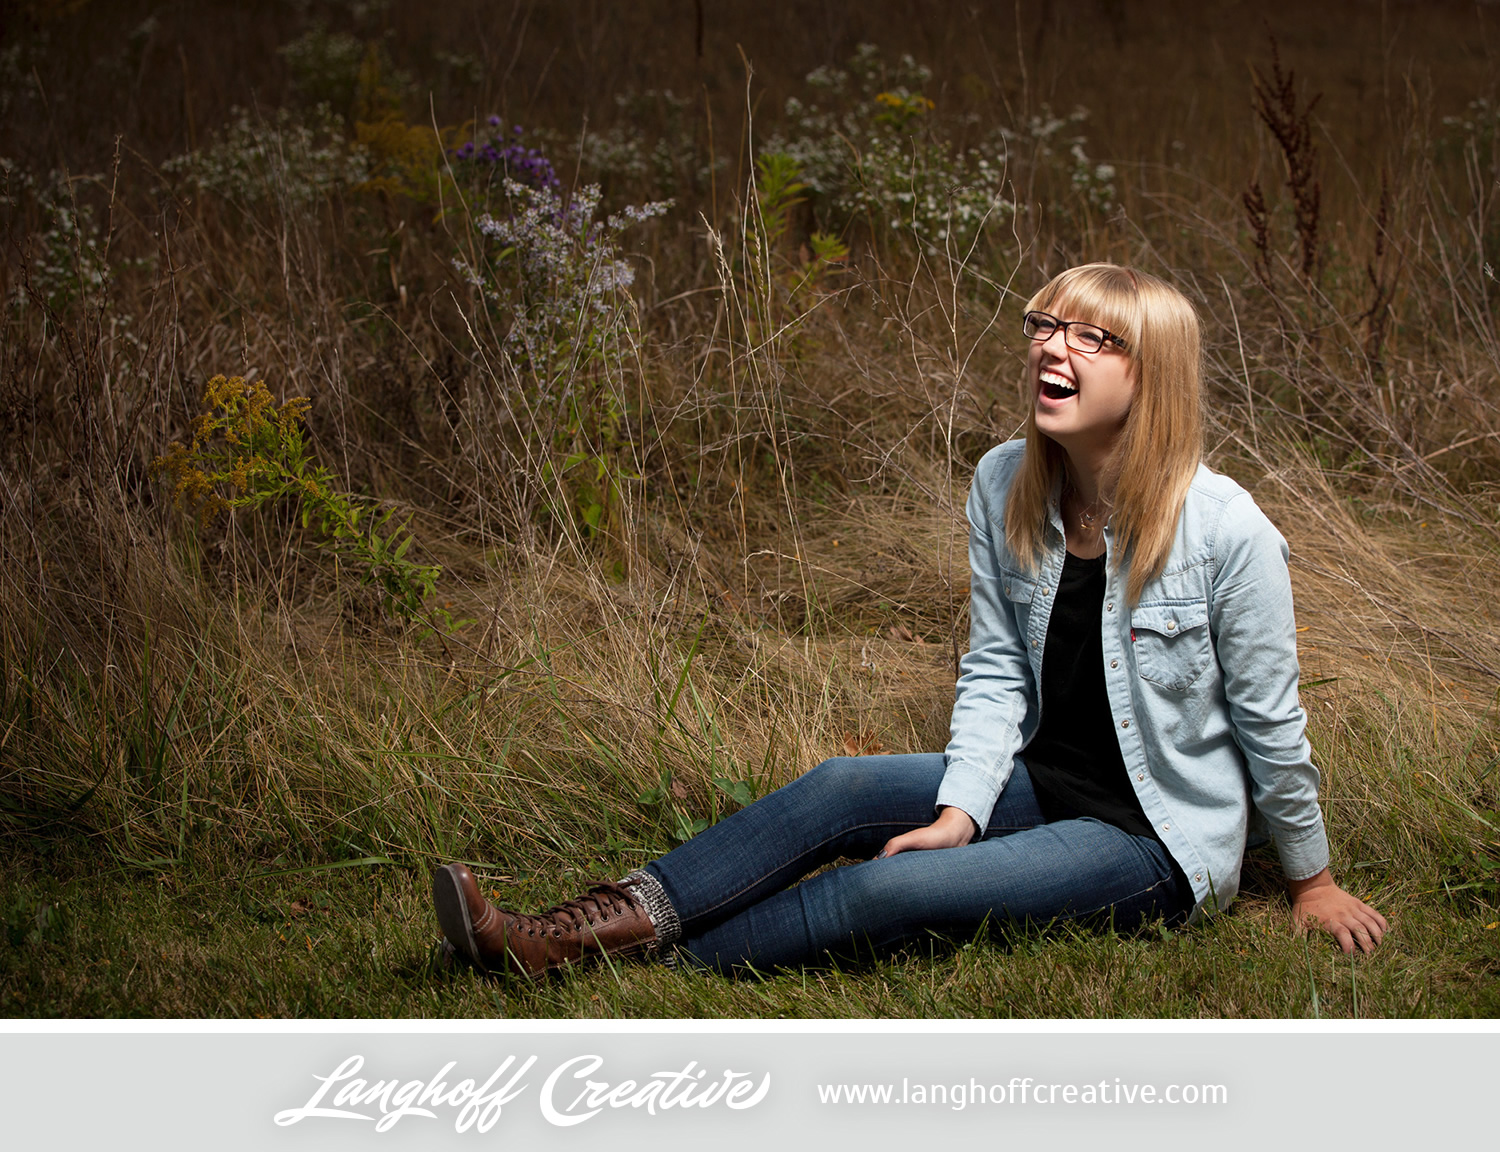 RacineSeniorPortraits-senior2014-LanghoffCreative-Abby-6-photo.jpg